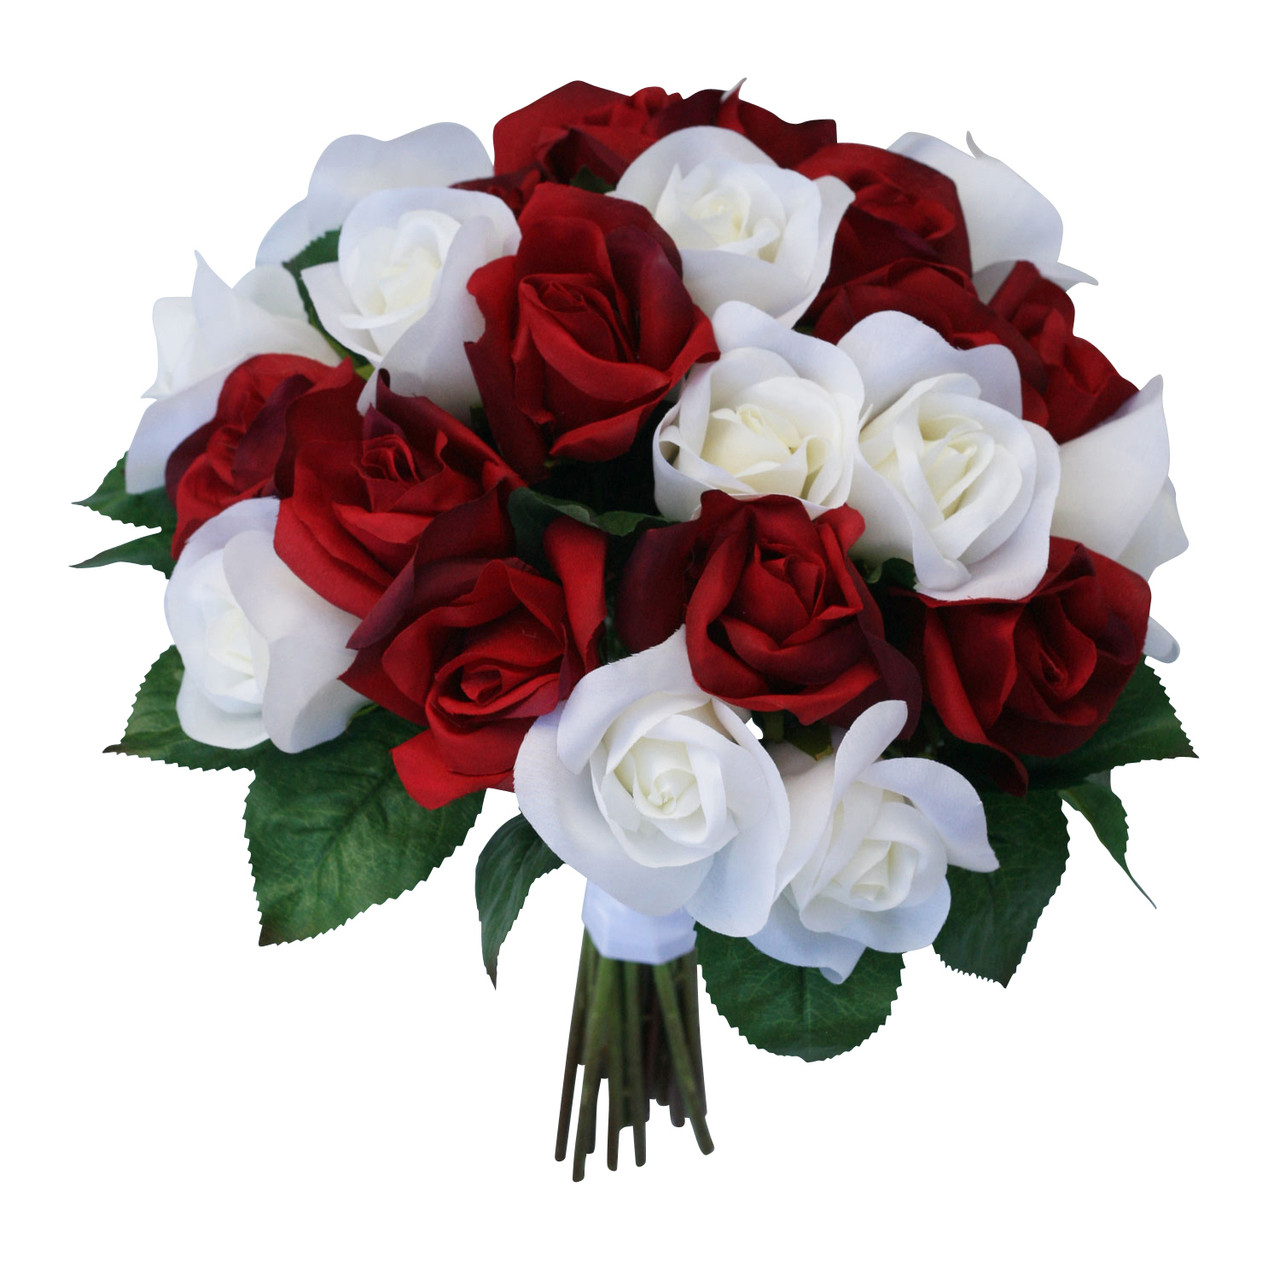 Artificial Wedding Bouquets.Red Ivory Silk Garden Rose Stems Artificial Wedding Bouquets Fake Wedding Flowers Large